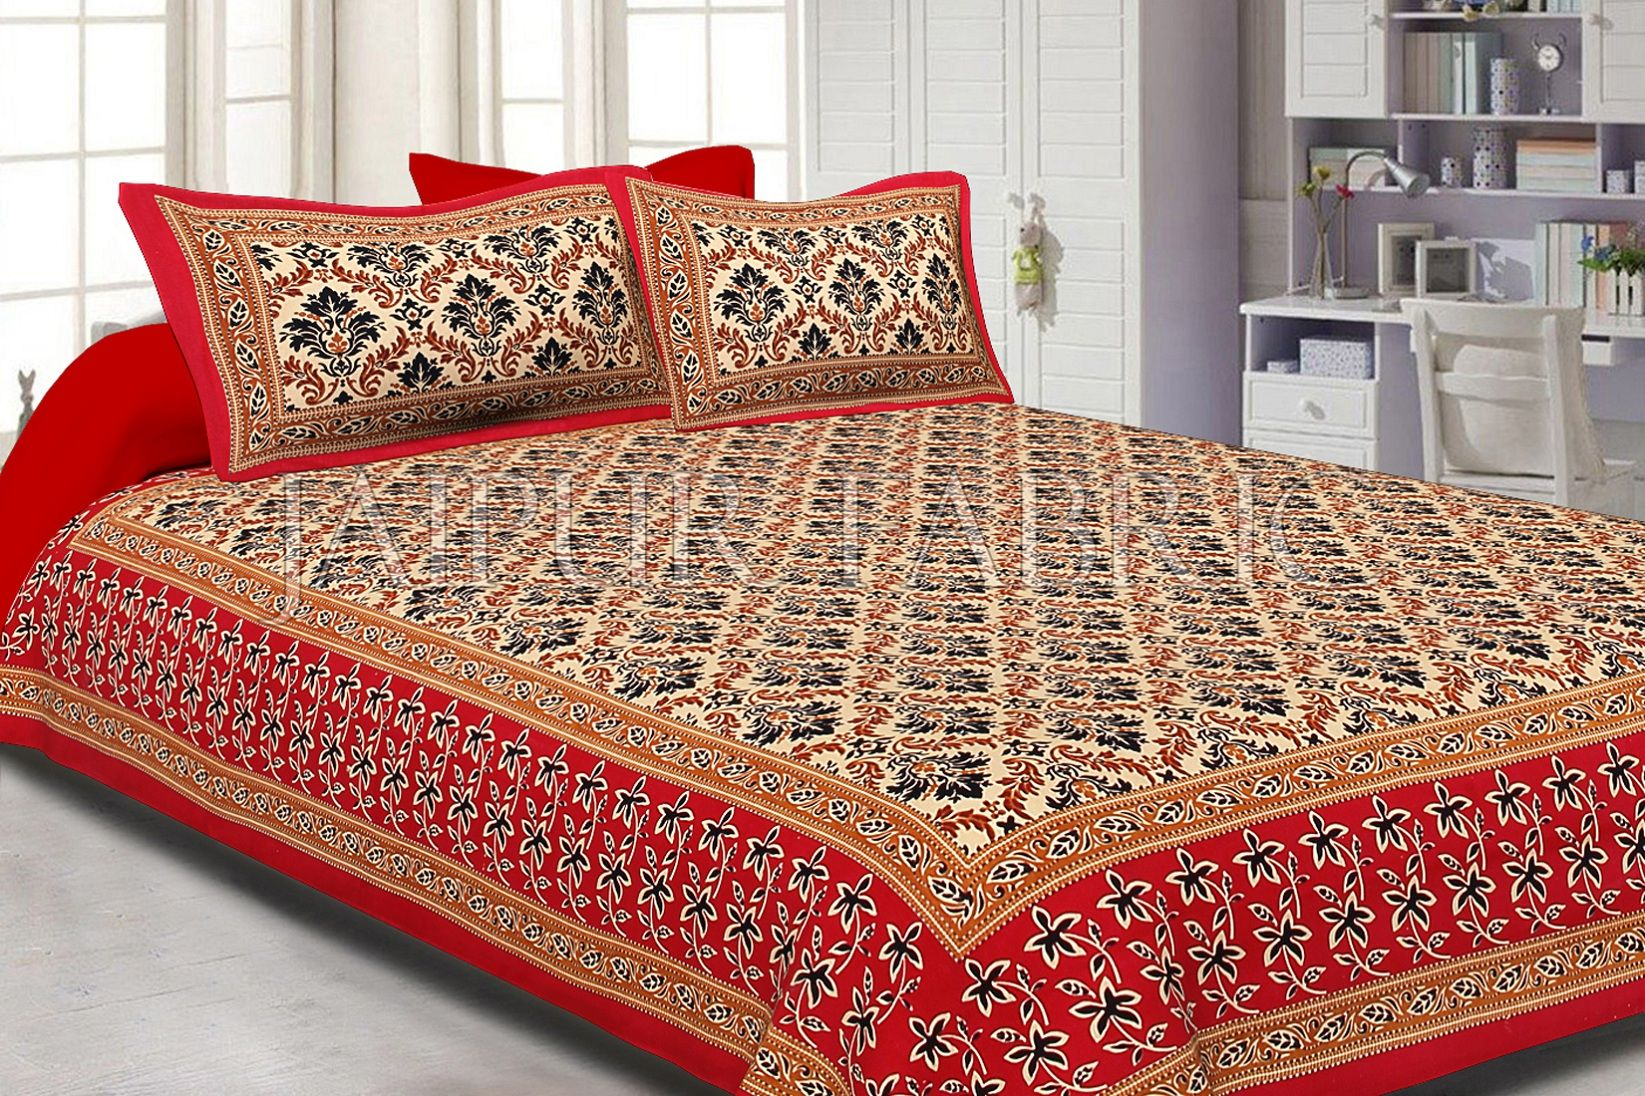 Red Border With Tropical Floral Print Cotton Double Bed Sheet